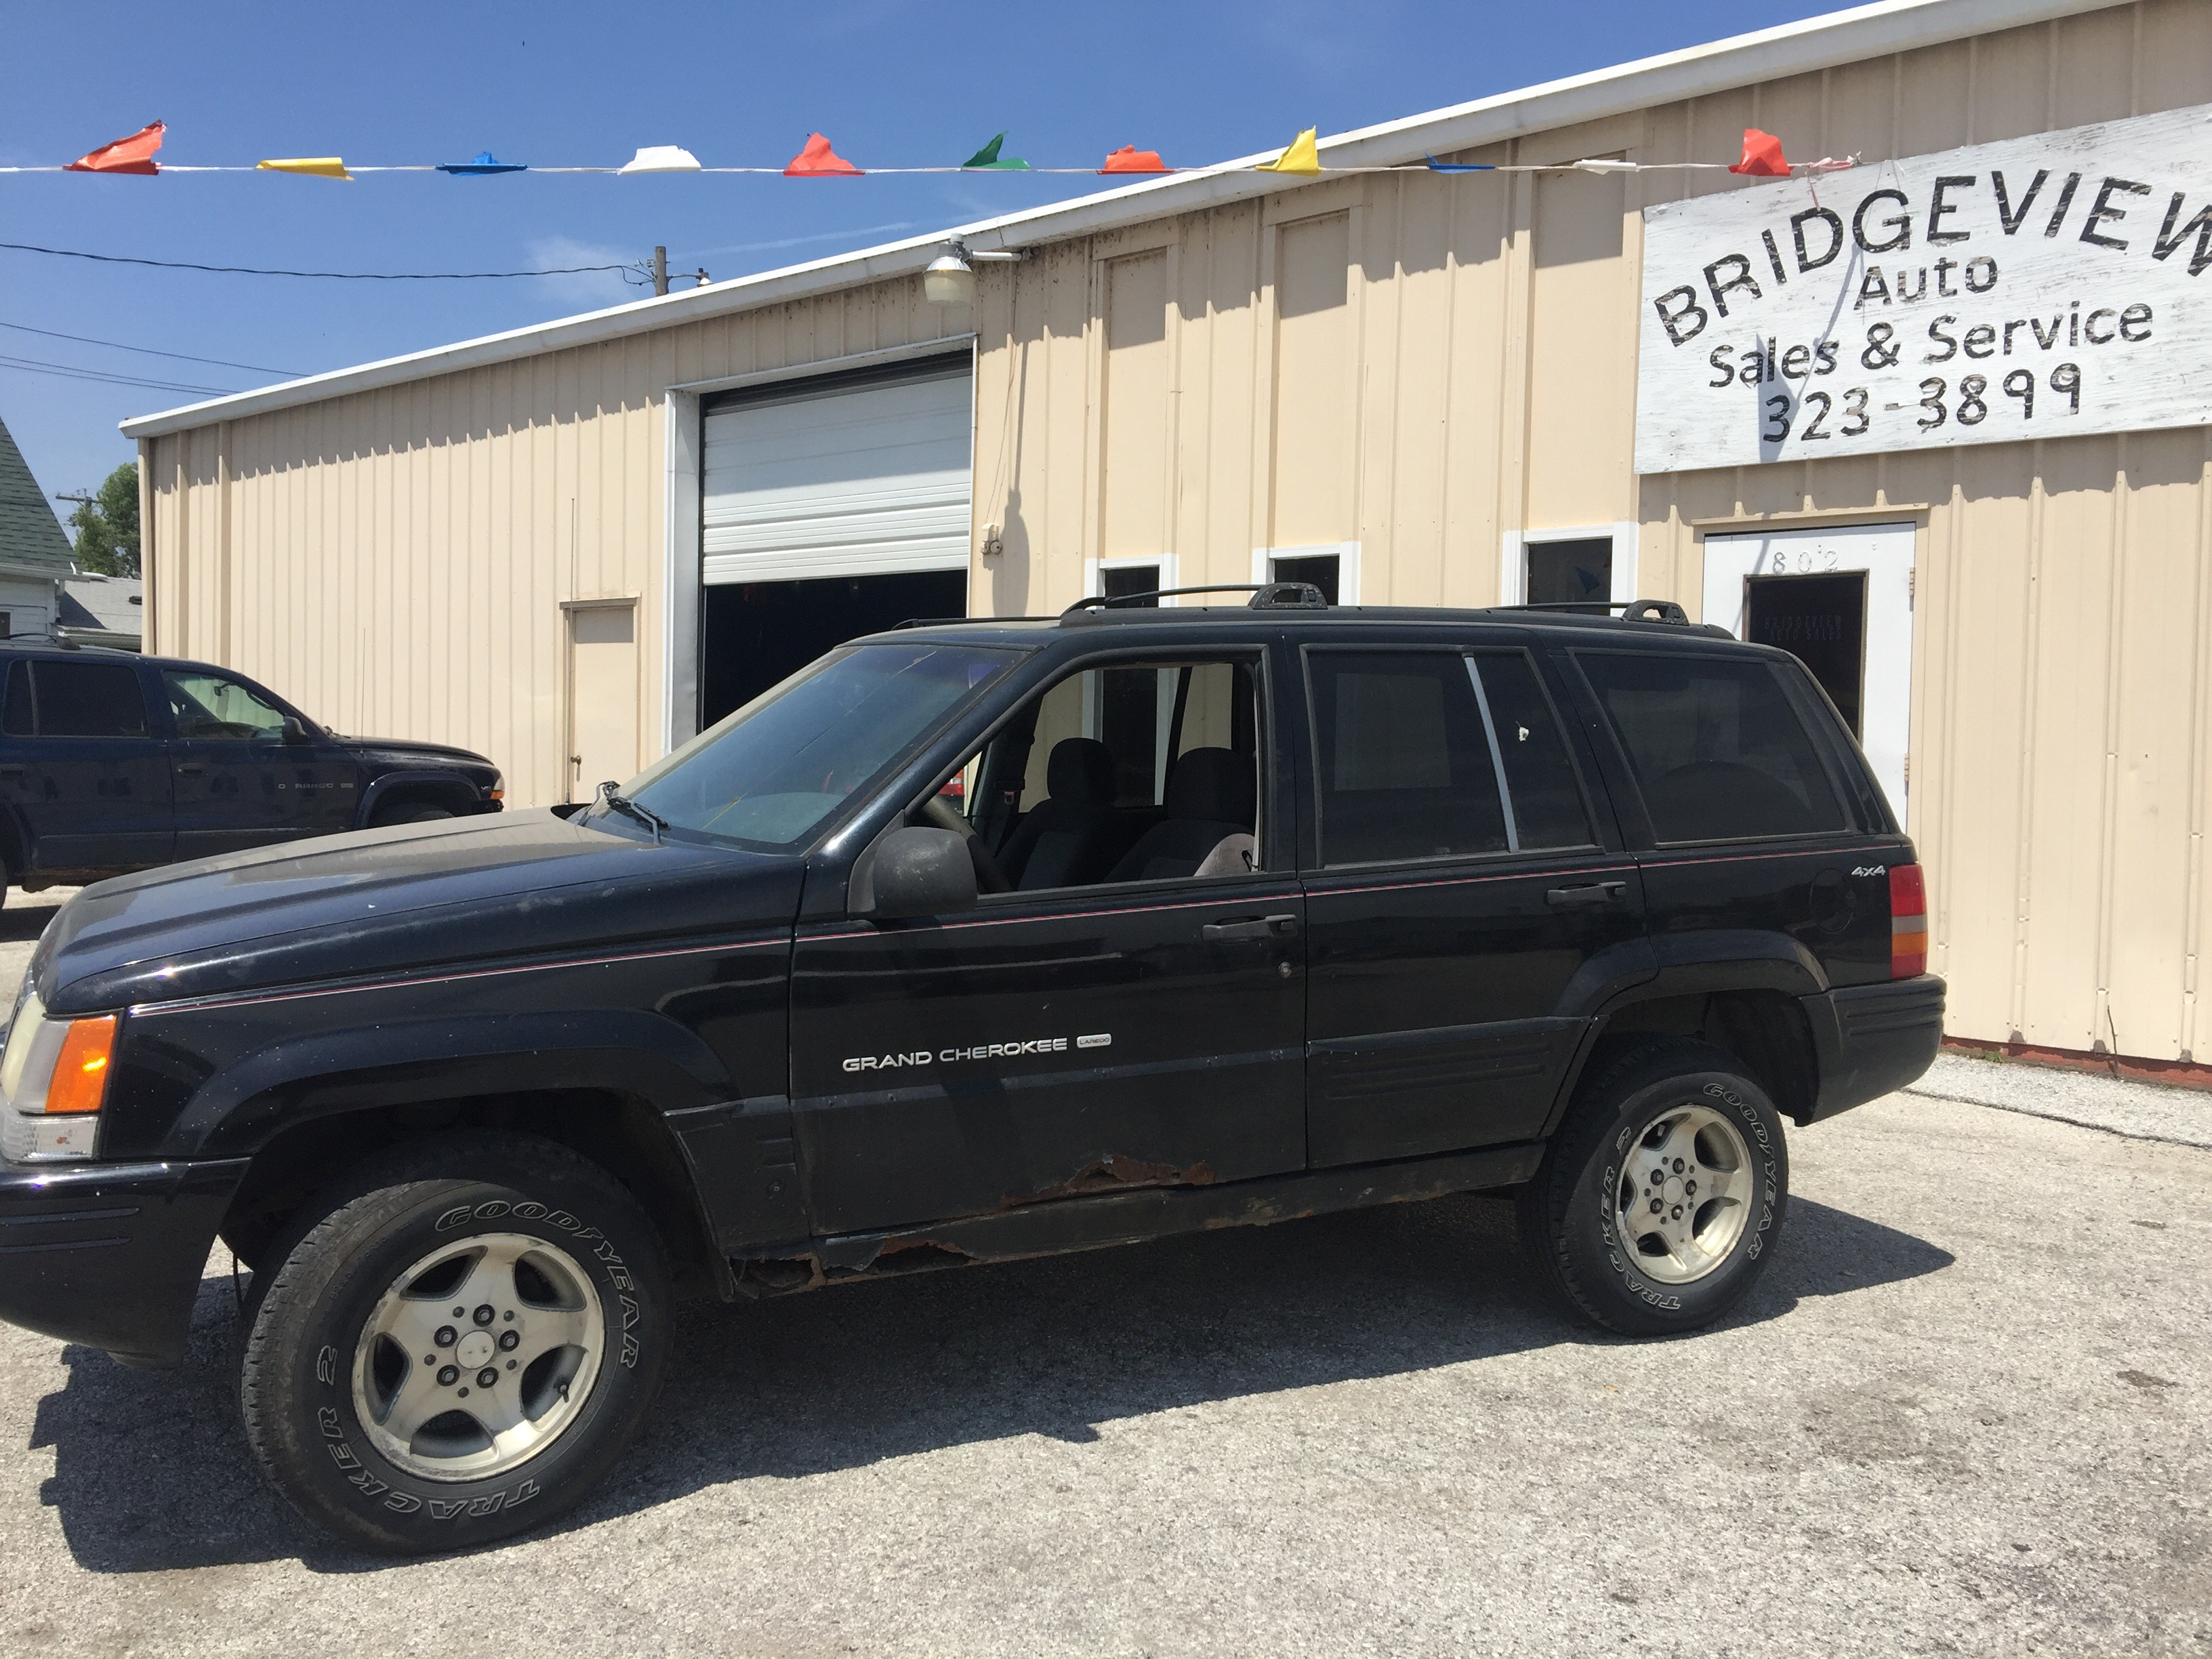 1998 JEEP GRAND CHEROKEE LAREDO $595 DOWN